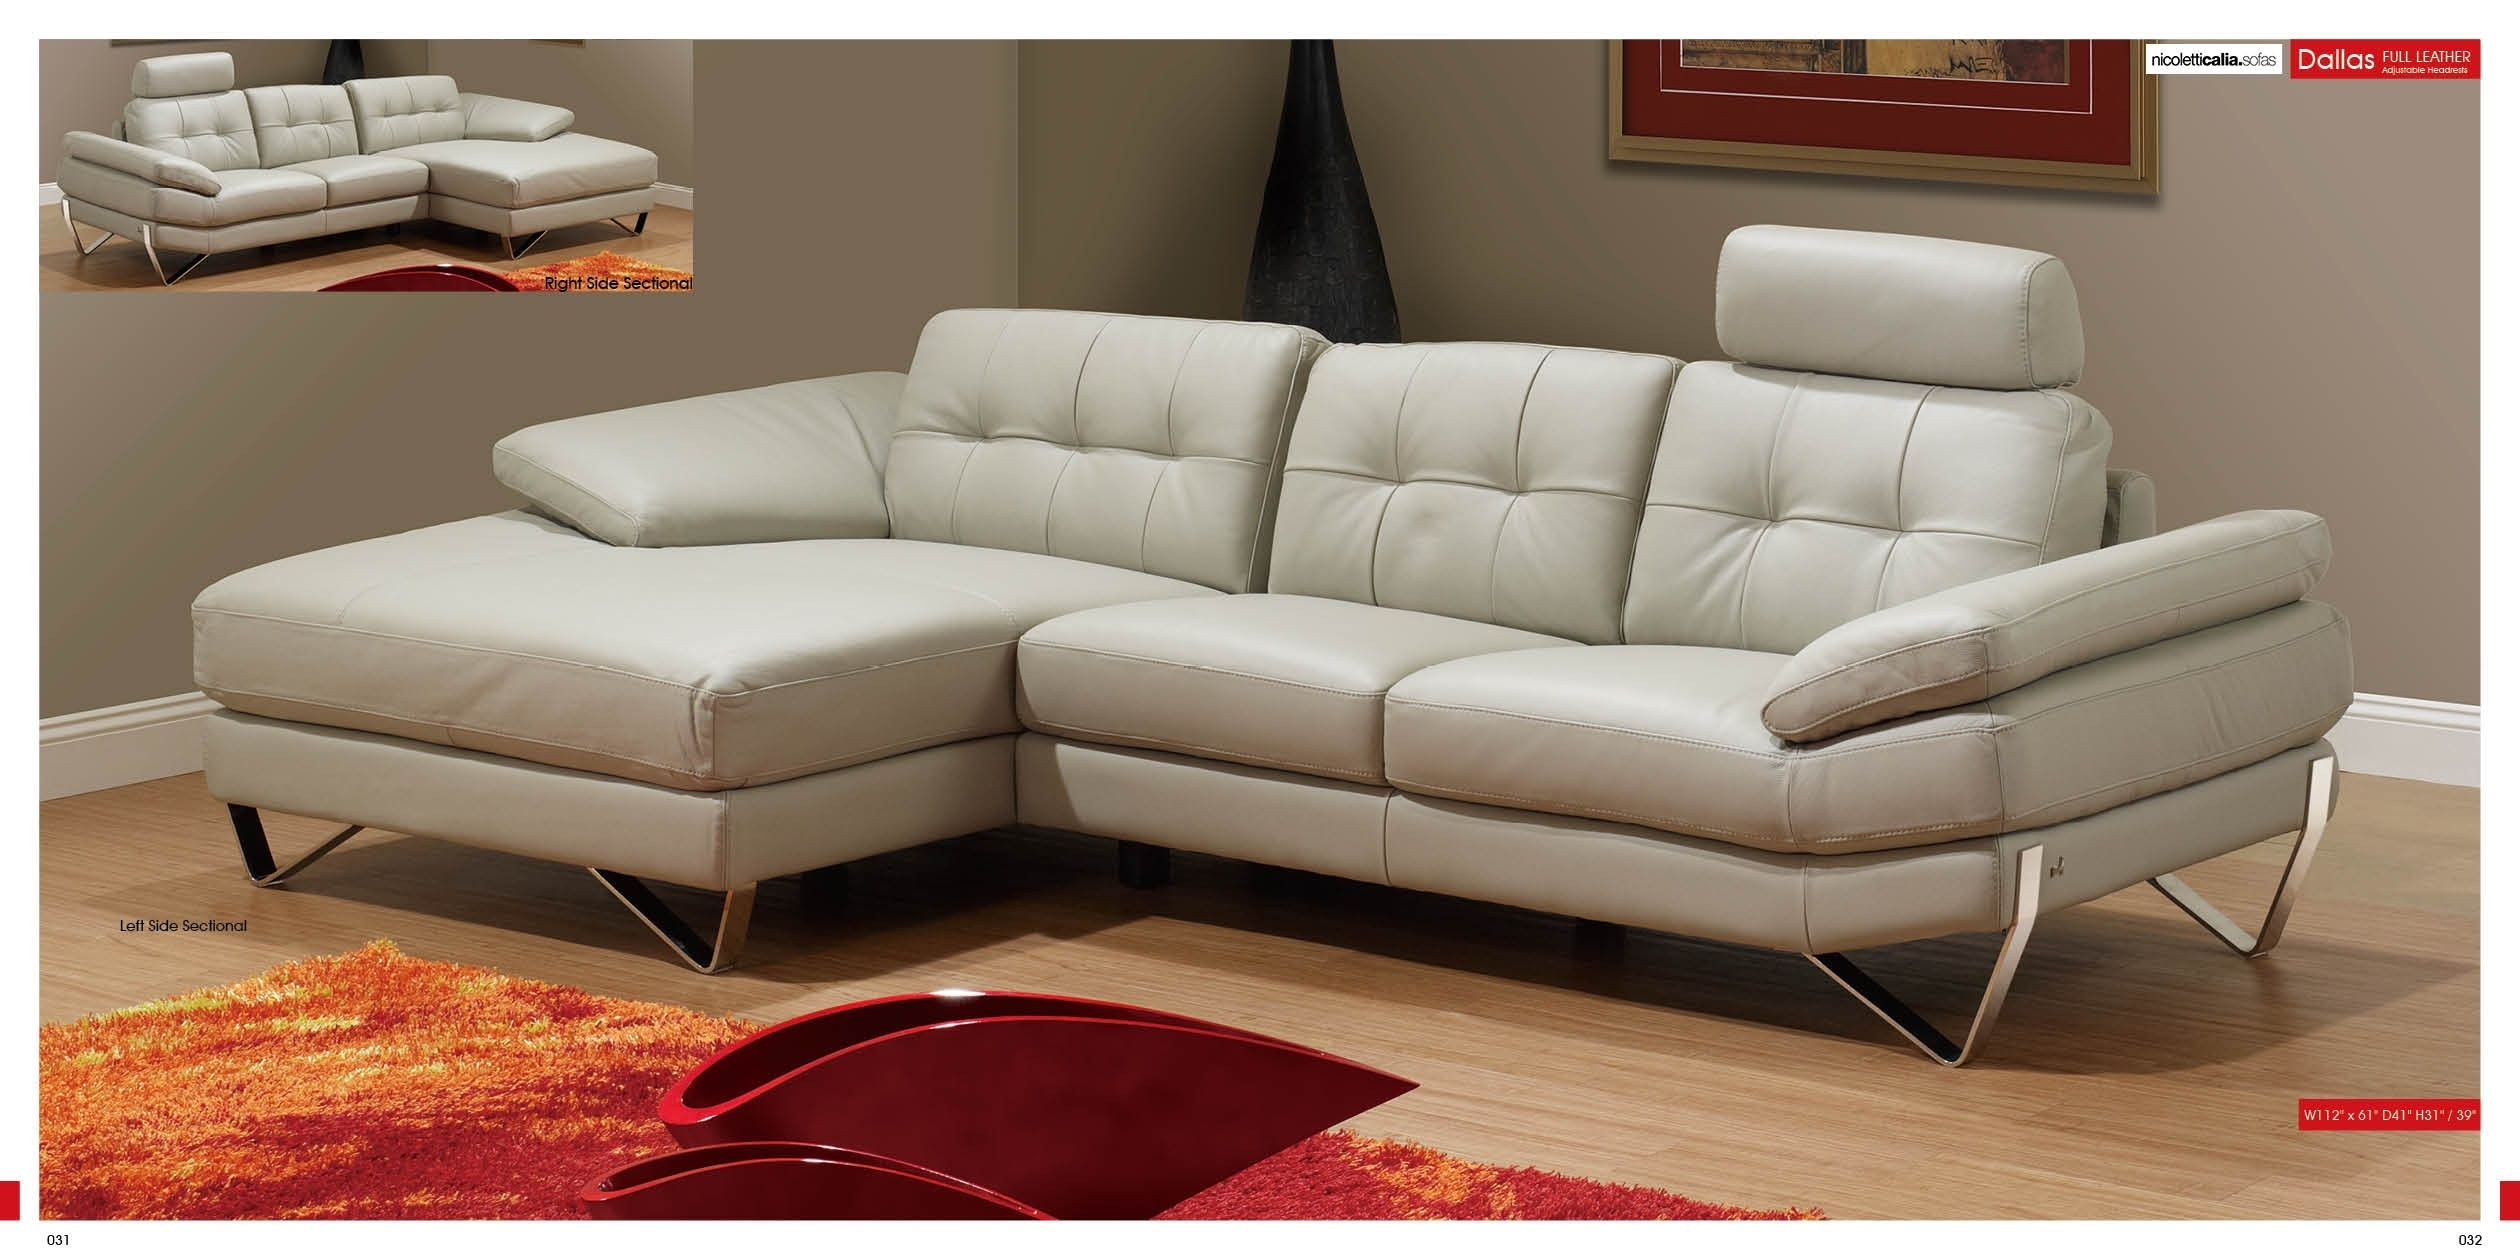 Furniture & Sofa: Havertys Frisco | Havertys Charlotte Nc | Havertys Intended For Macon Ga Sectional Sofas (View 10 of 10)